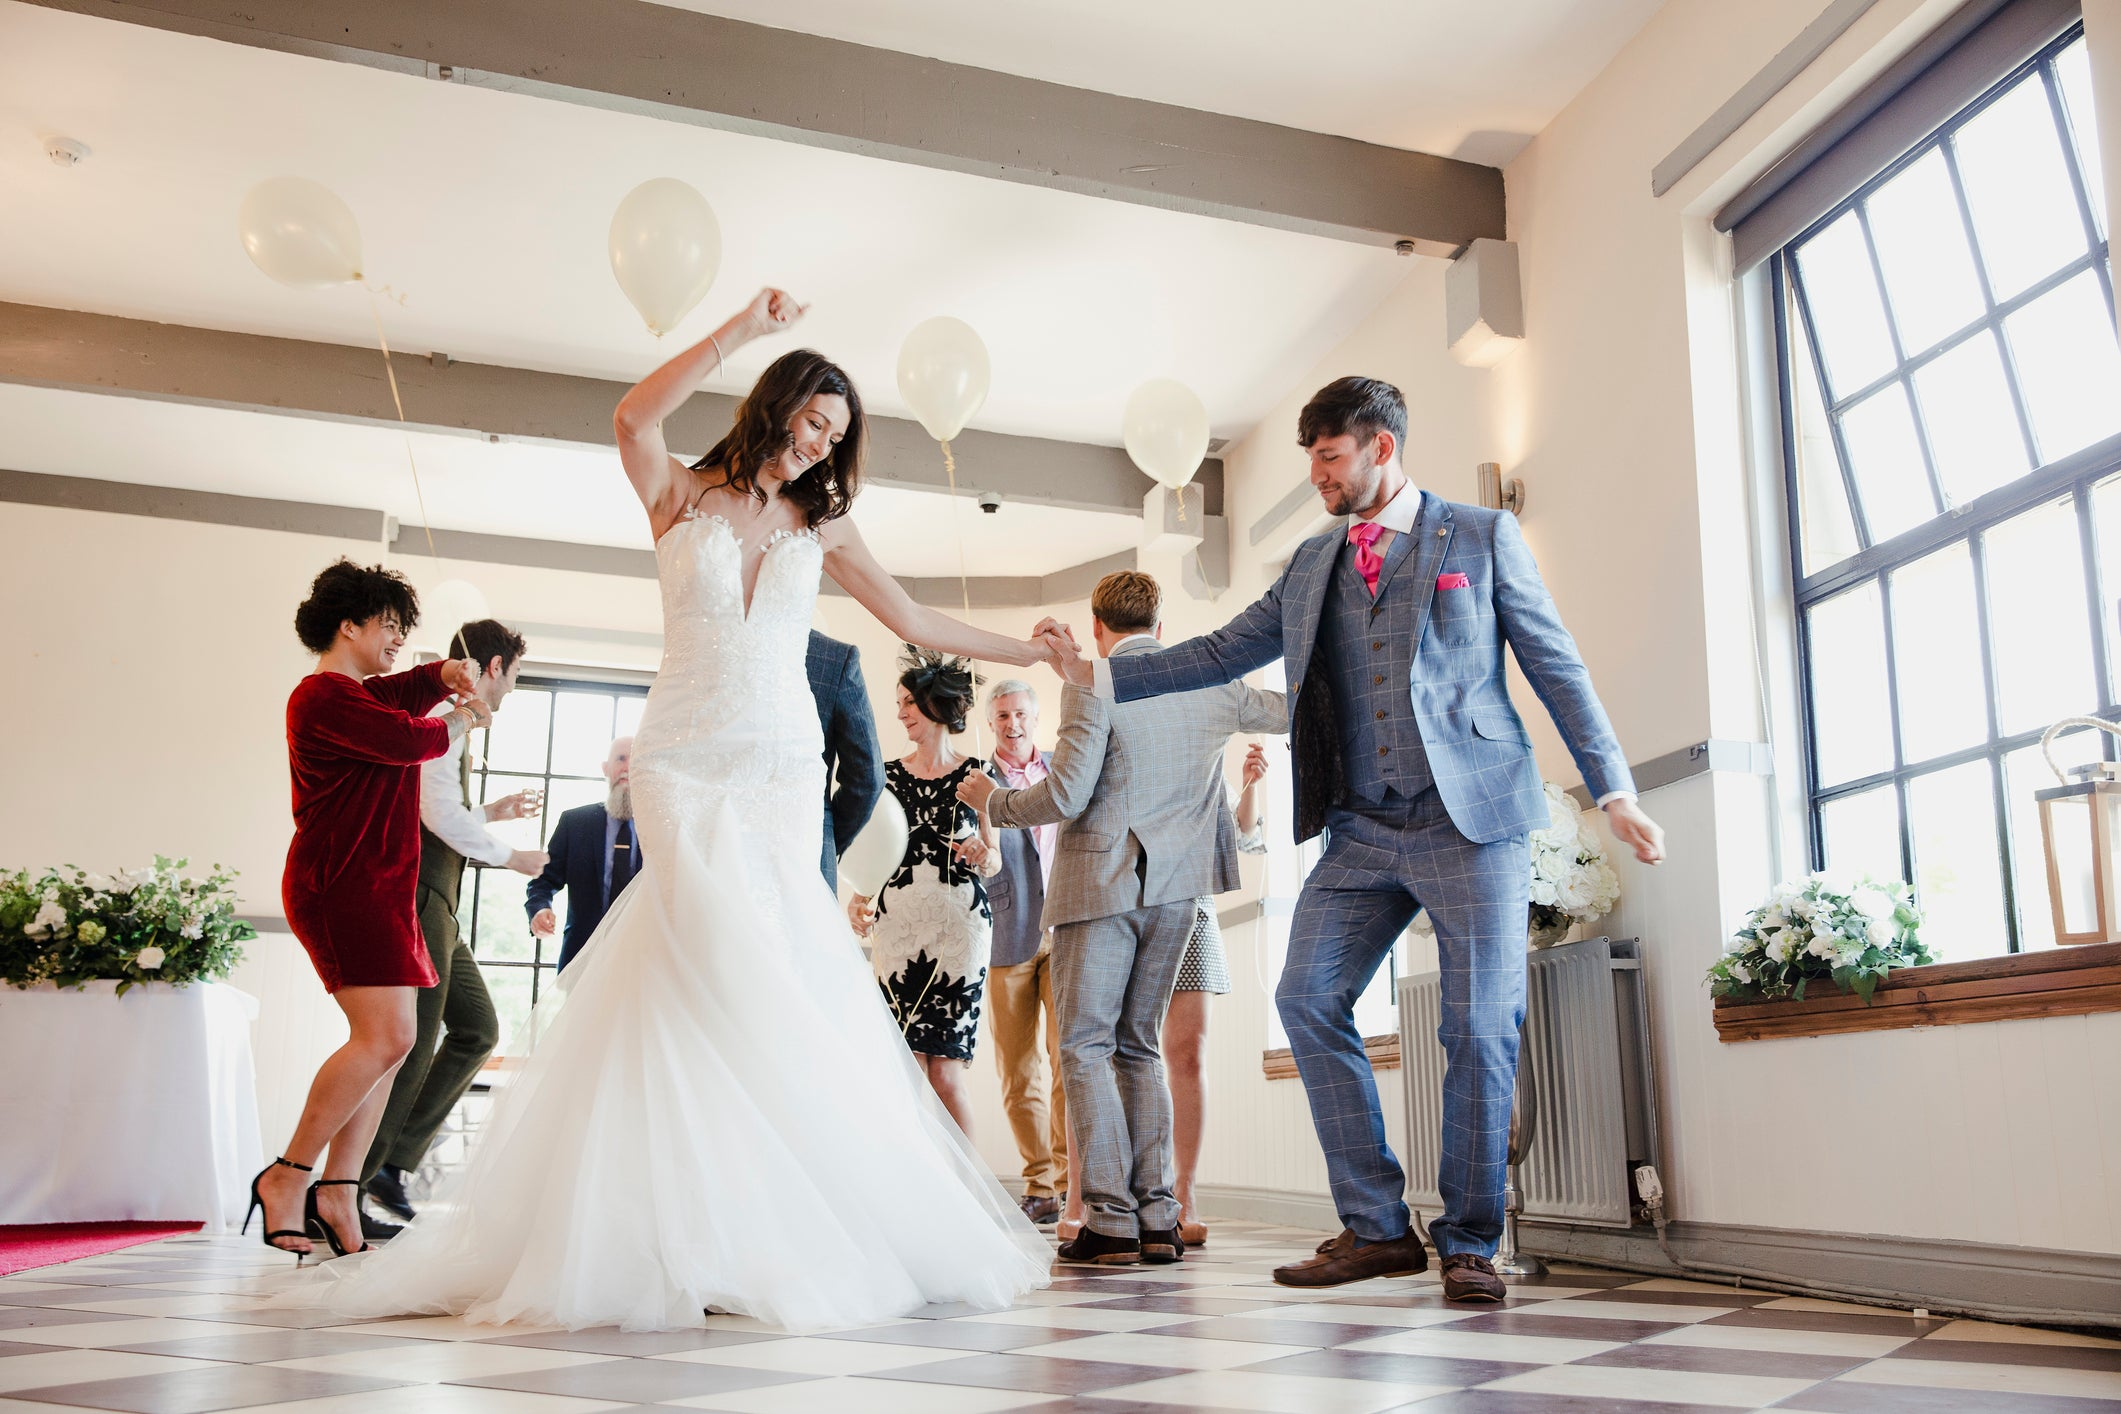 How Much Will Attending A Wedding Cost You The Motley Fool